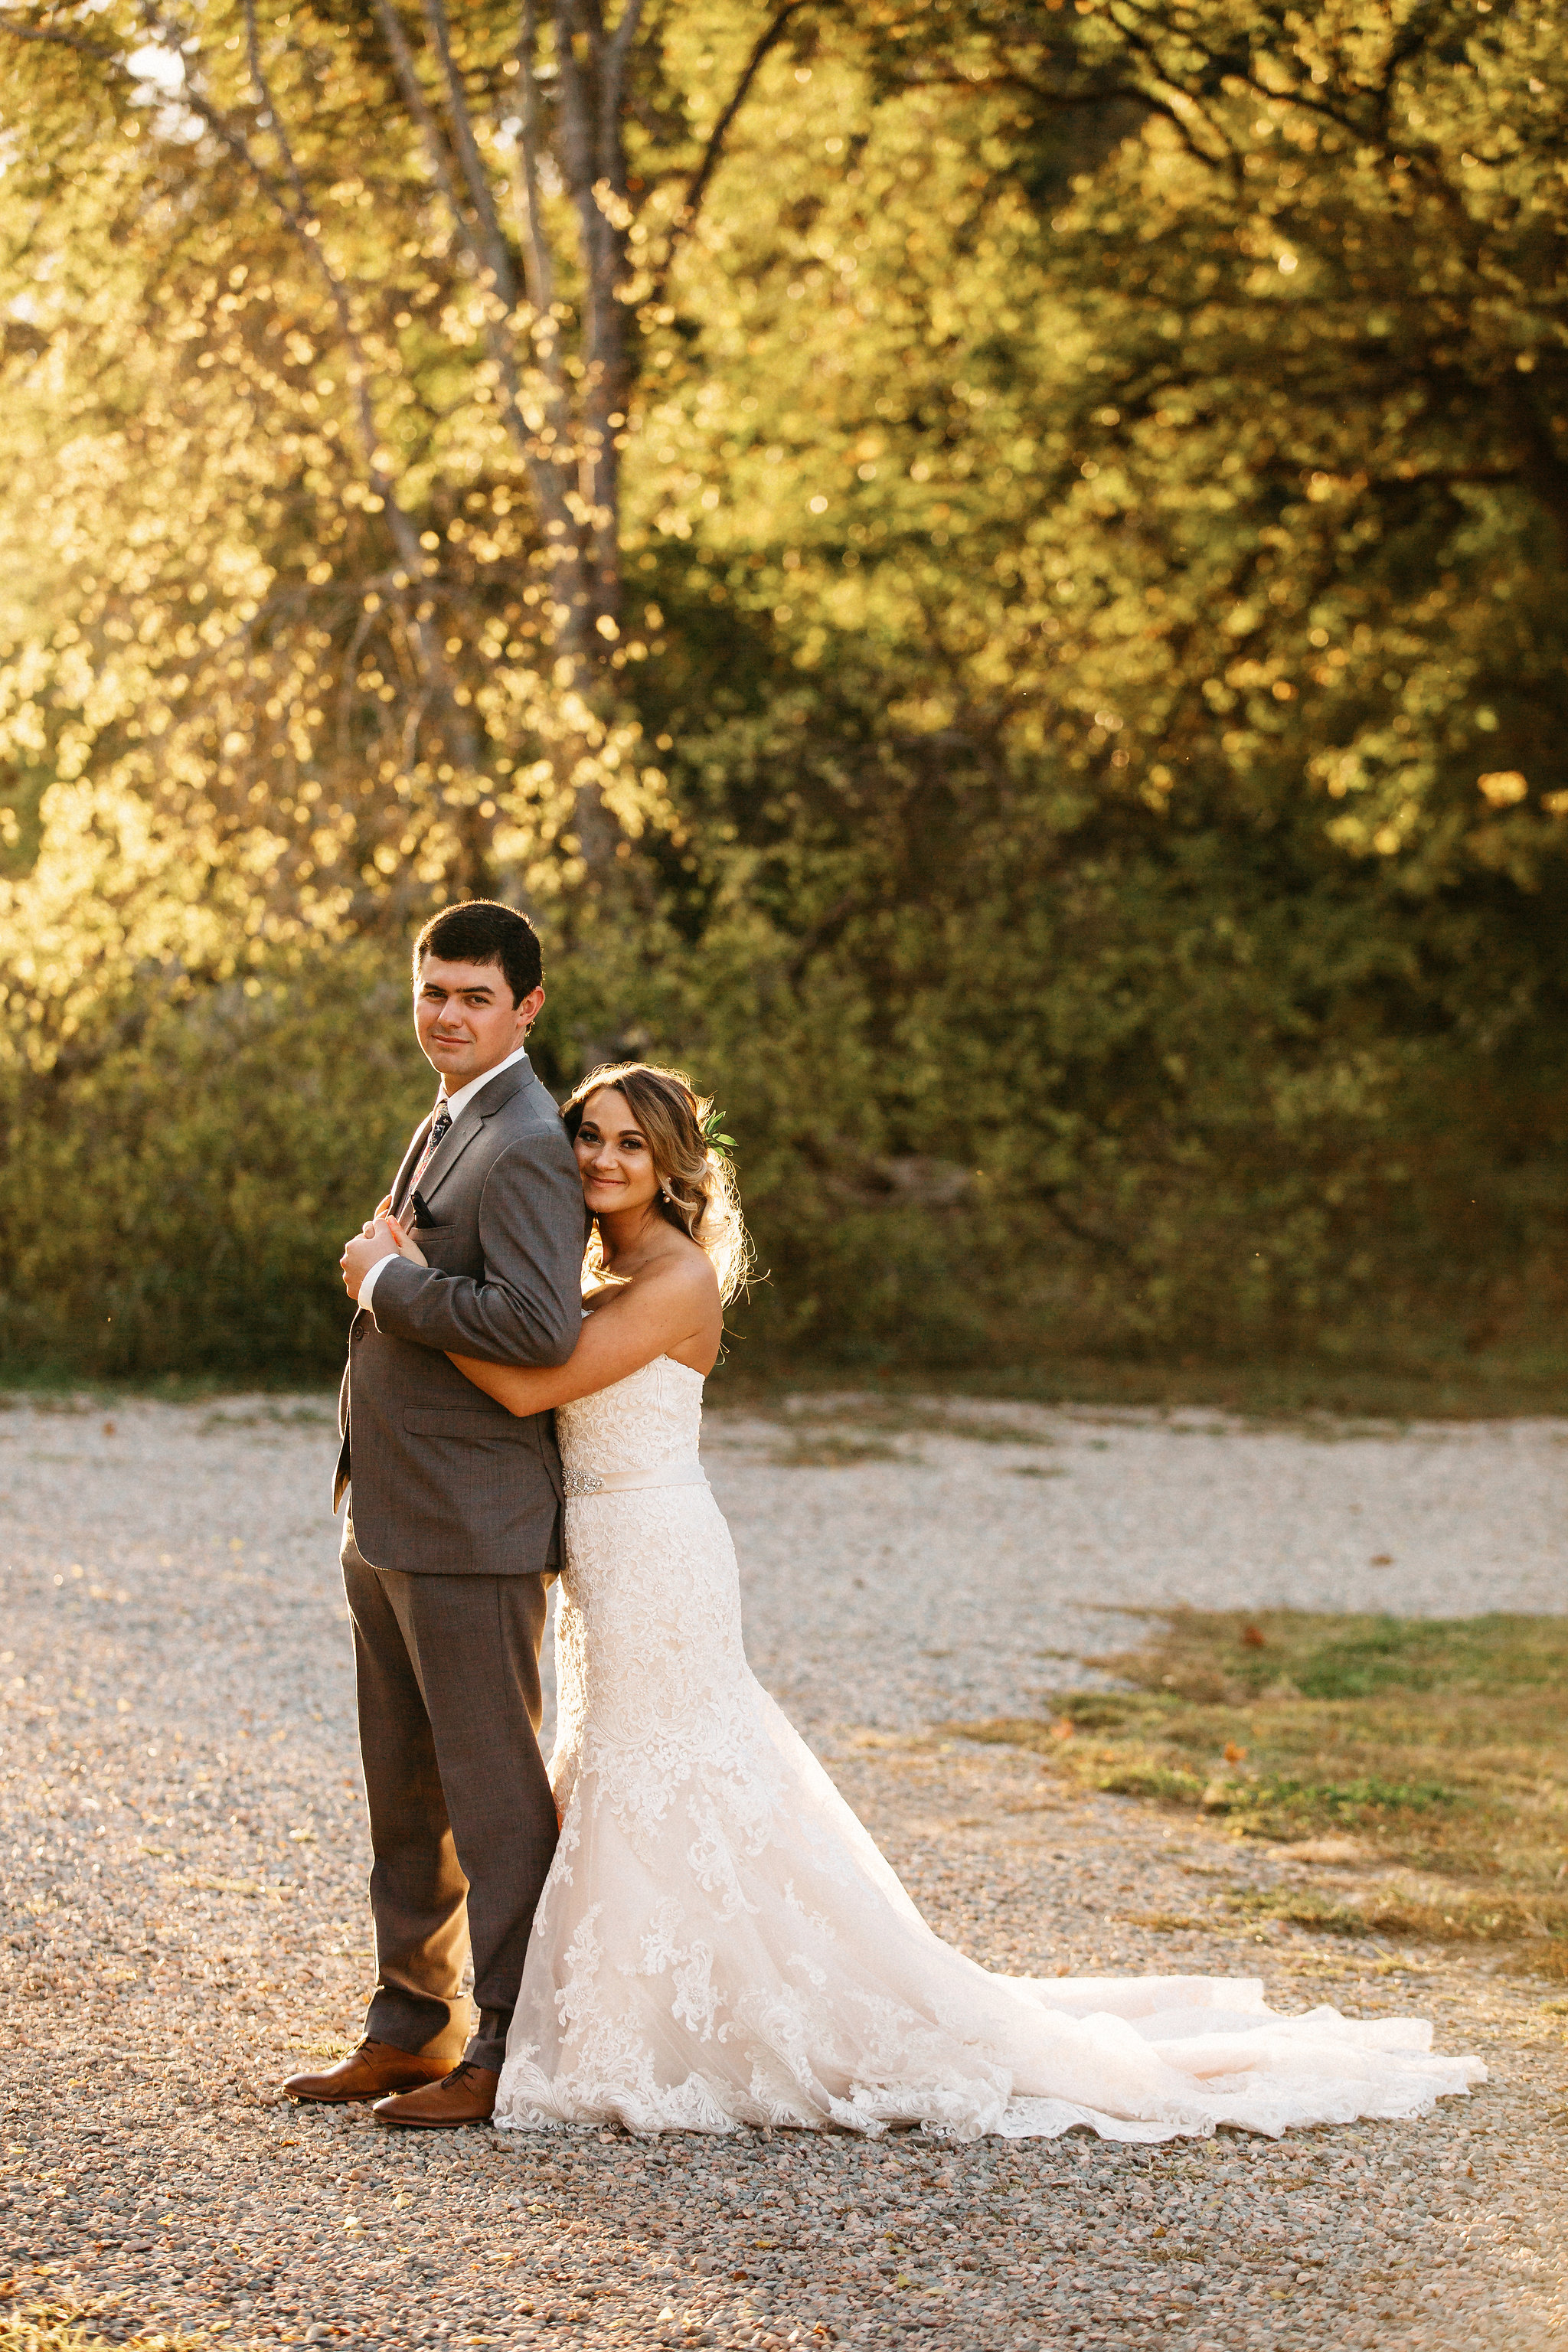 Ashley&NathanMarried2017-11-10at19.26.49PM105.jpg